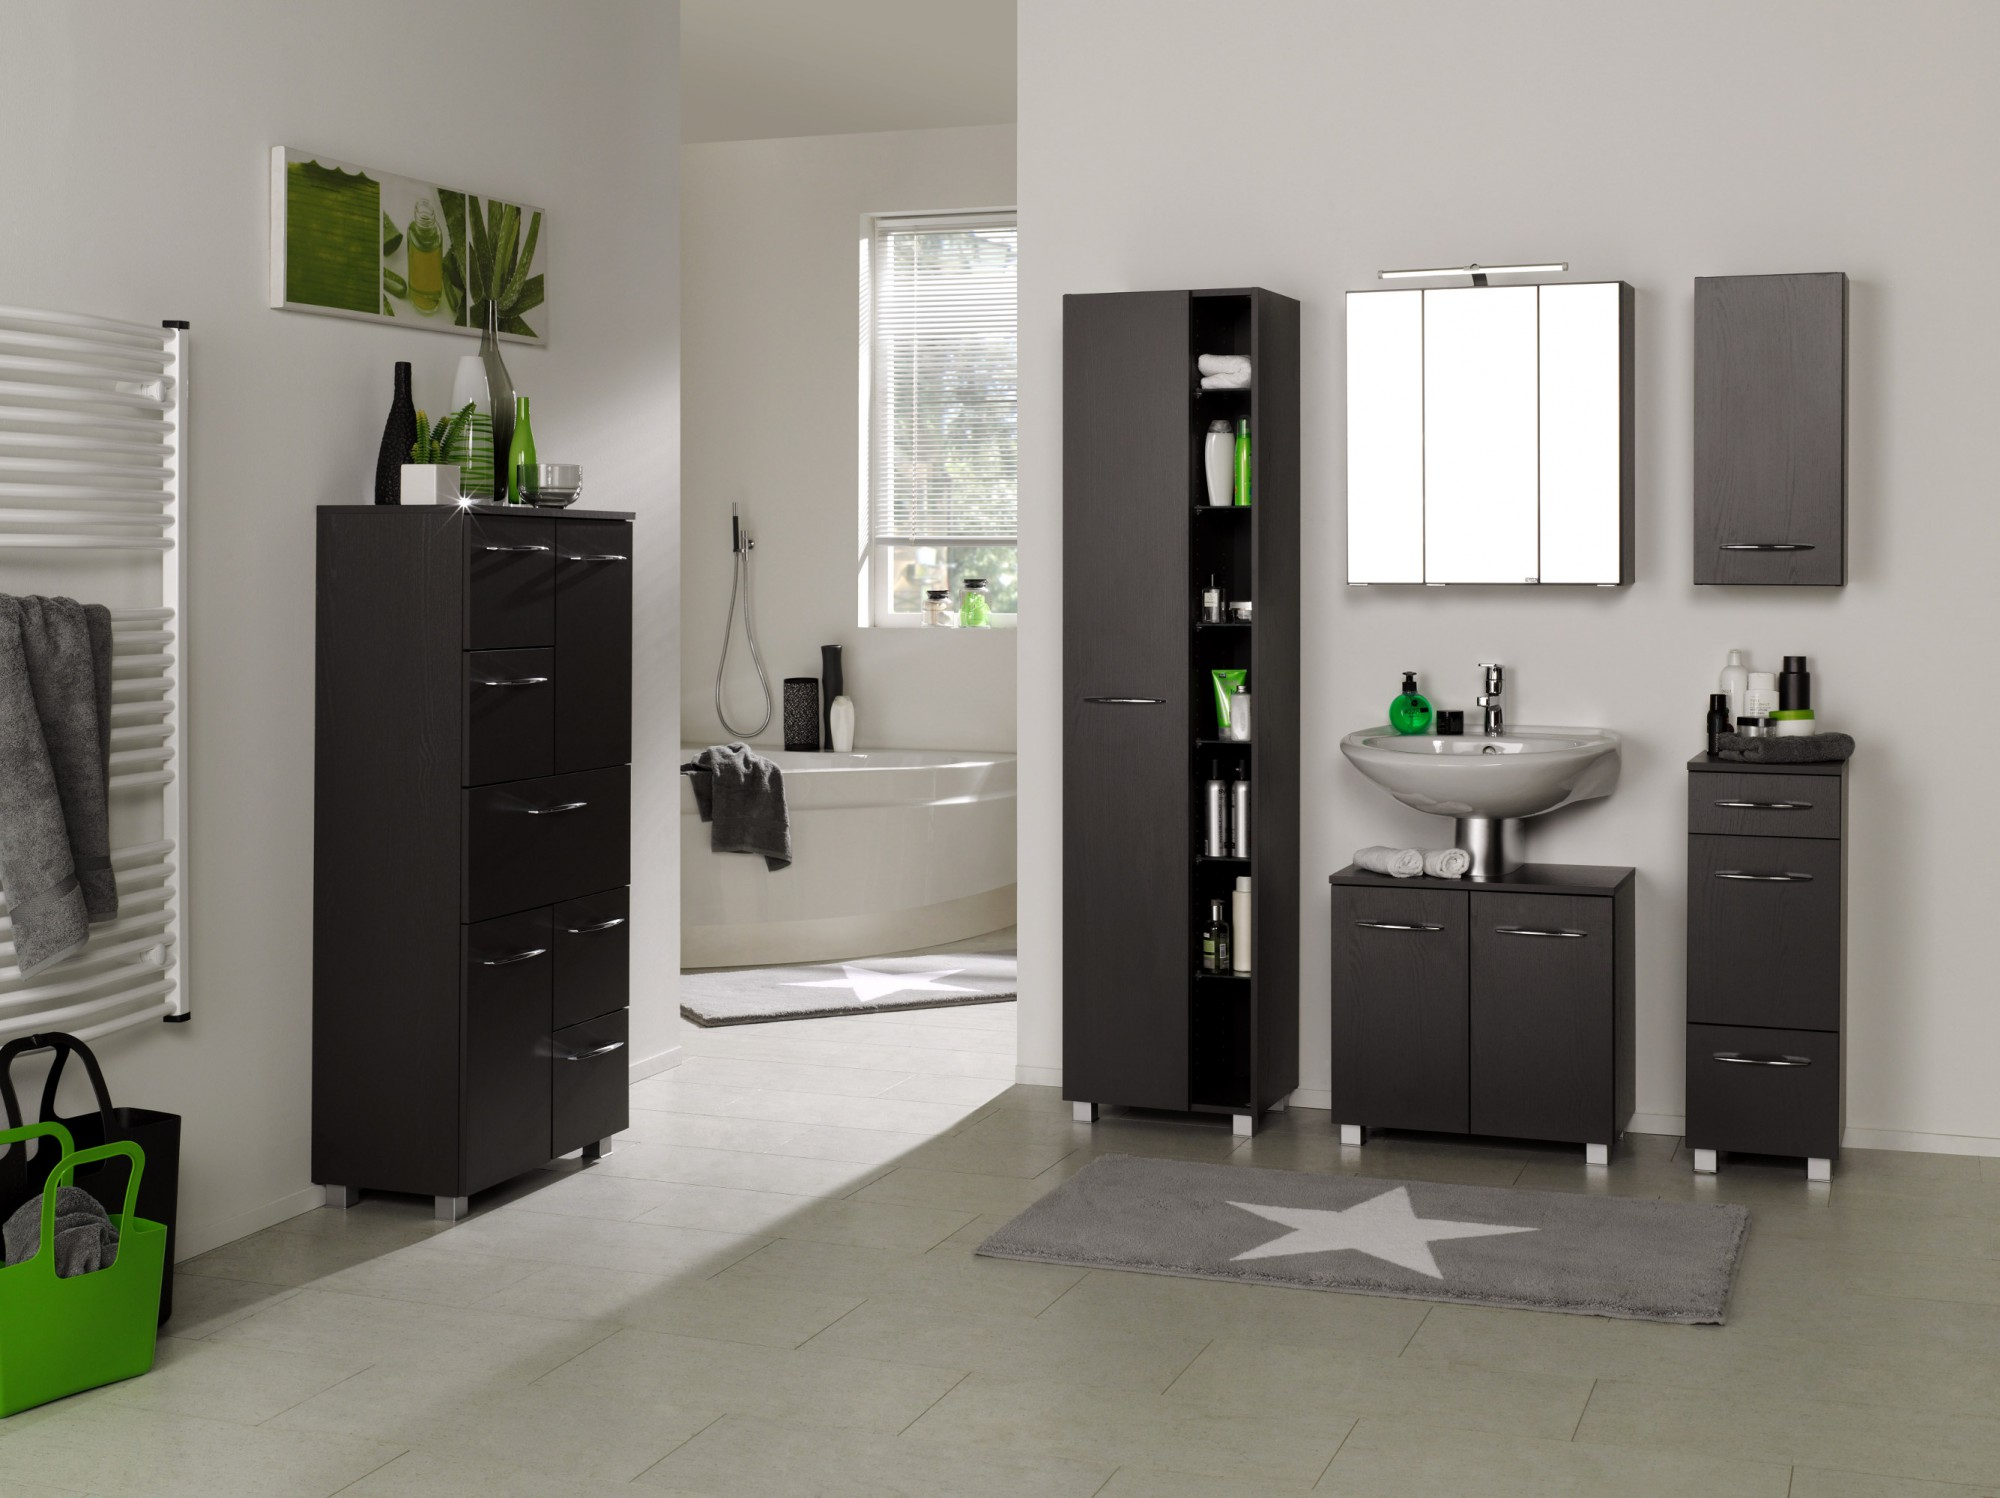 bad unterschrank portofino 2 t rig 1 schublade 1 auszug 60 cm breit graphitgrau bad bad. Black Bedroom Furniture Sets. Home Design Ideas